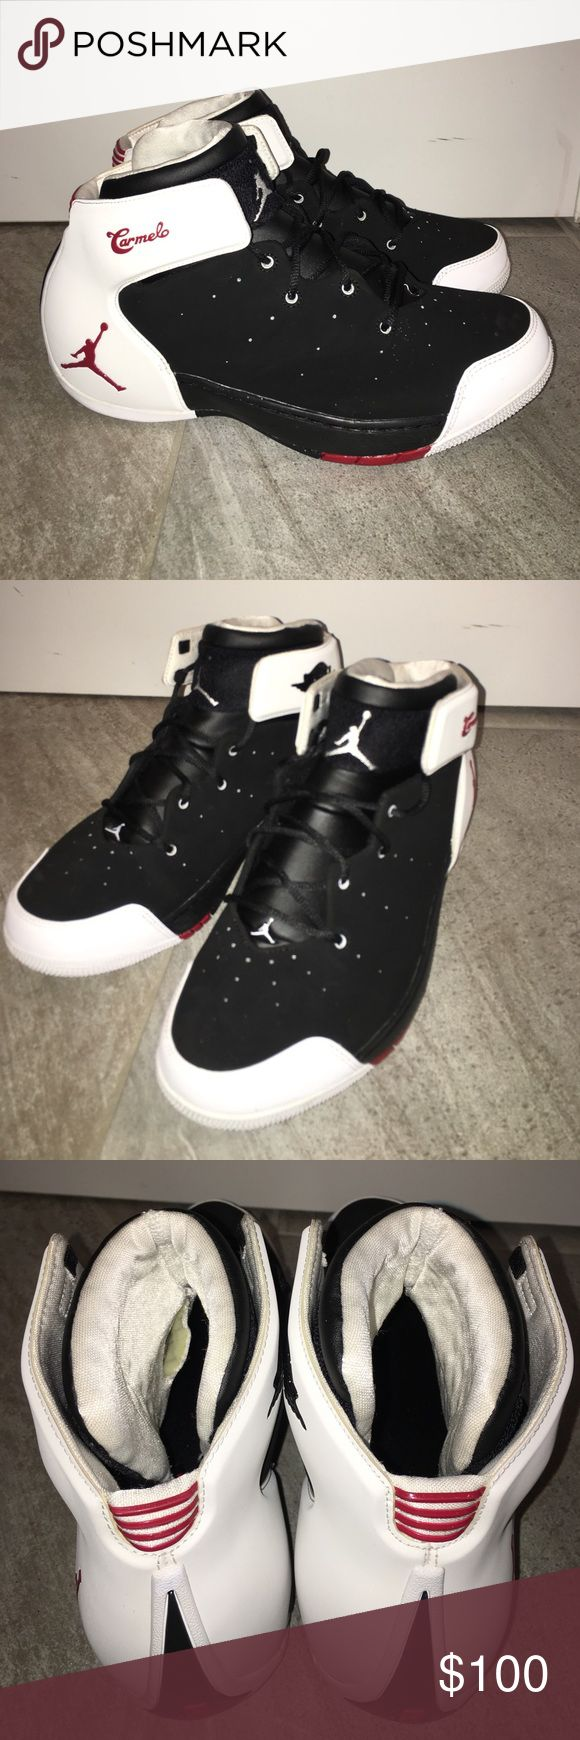 JORDAN MELO Jordan Melo 1.5 Color: Black/Gym Red-White Style Code: 631310-001 Release Date: February 1, 2014 Men's Sz 9 small rip inside left tongue of shoe but doesn't affect wear. Hardly worn. 9/10 condition. No trades. Jordan Shoes Athletic Shoes